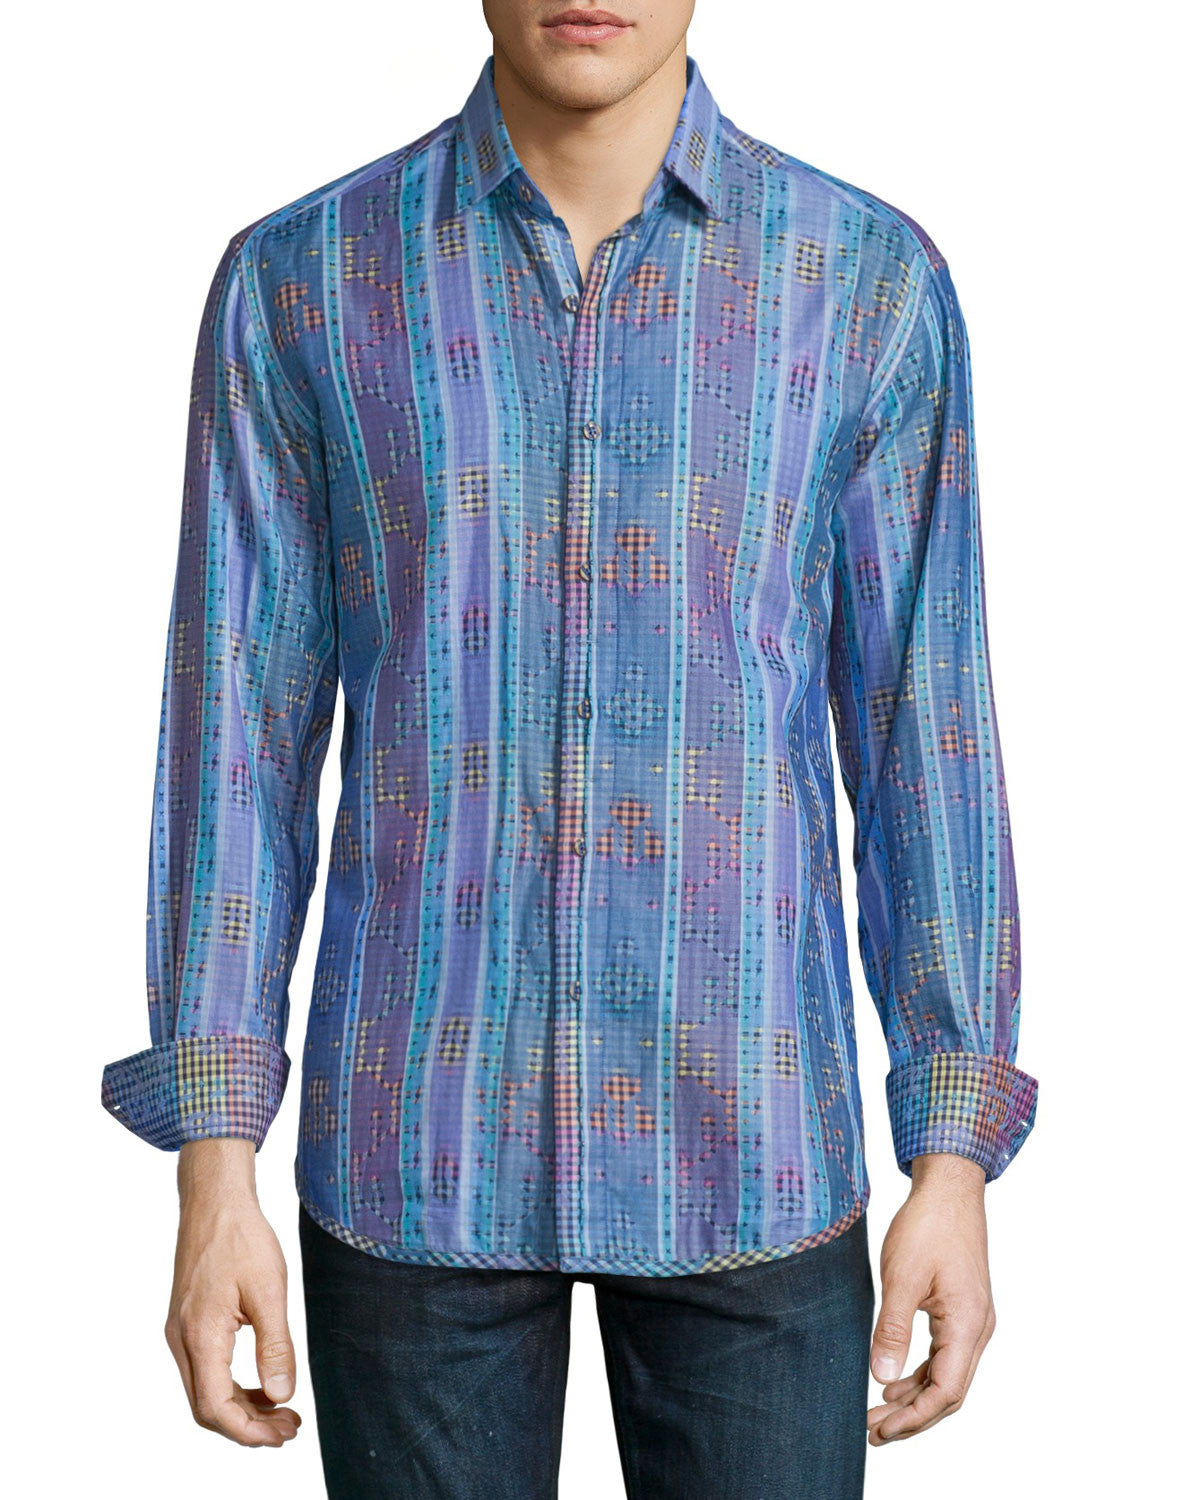 Robert Graham Cultivated Sport Shirt in Blue RS161818CF